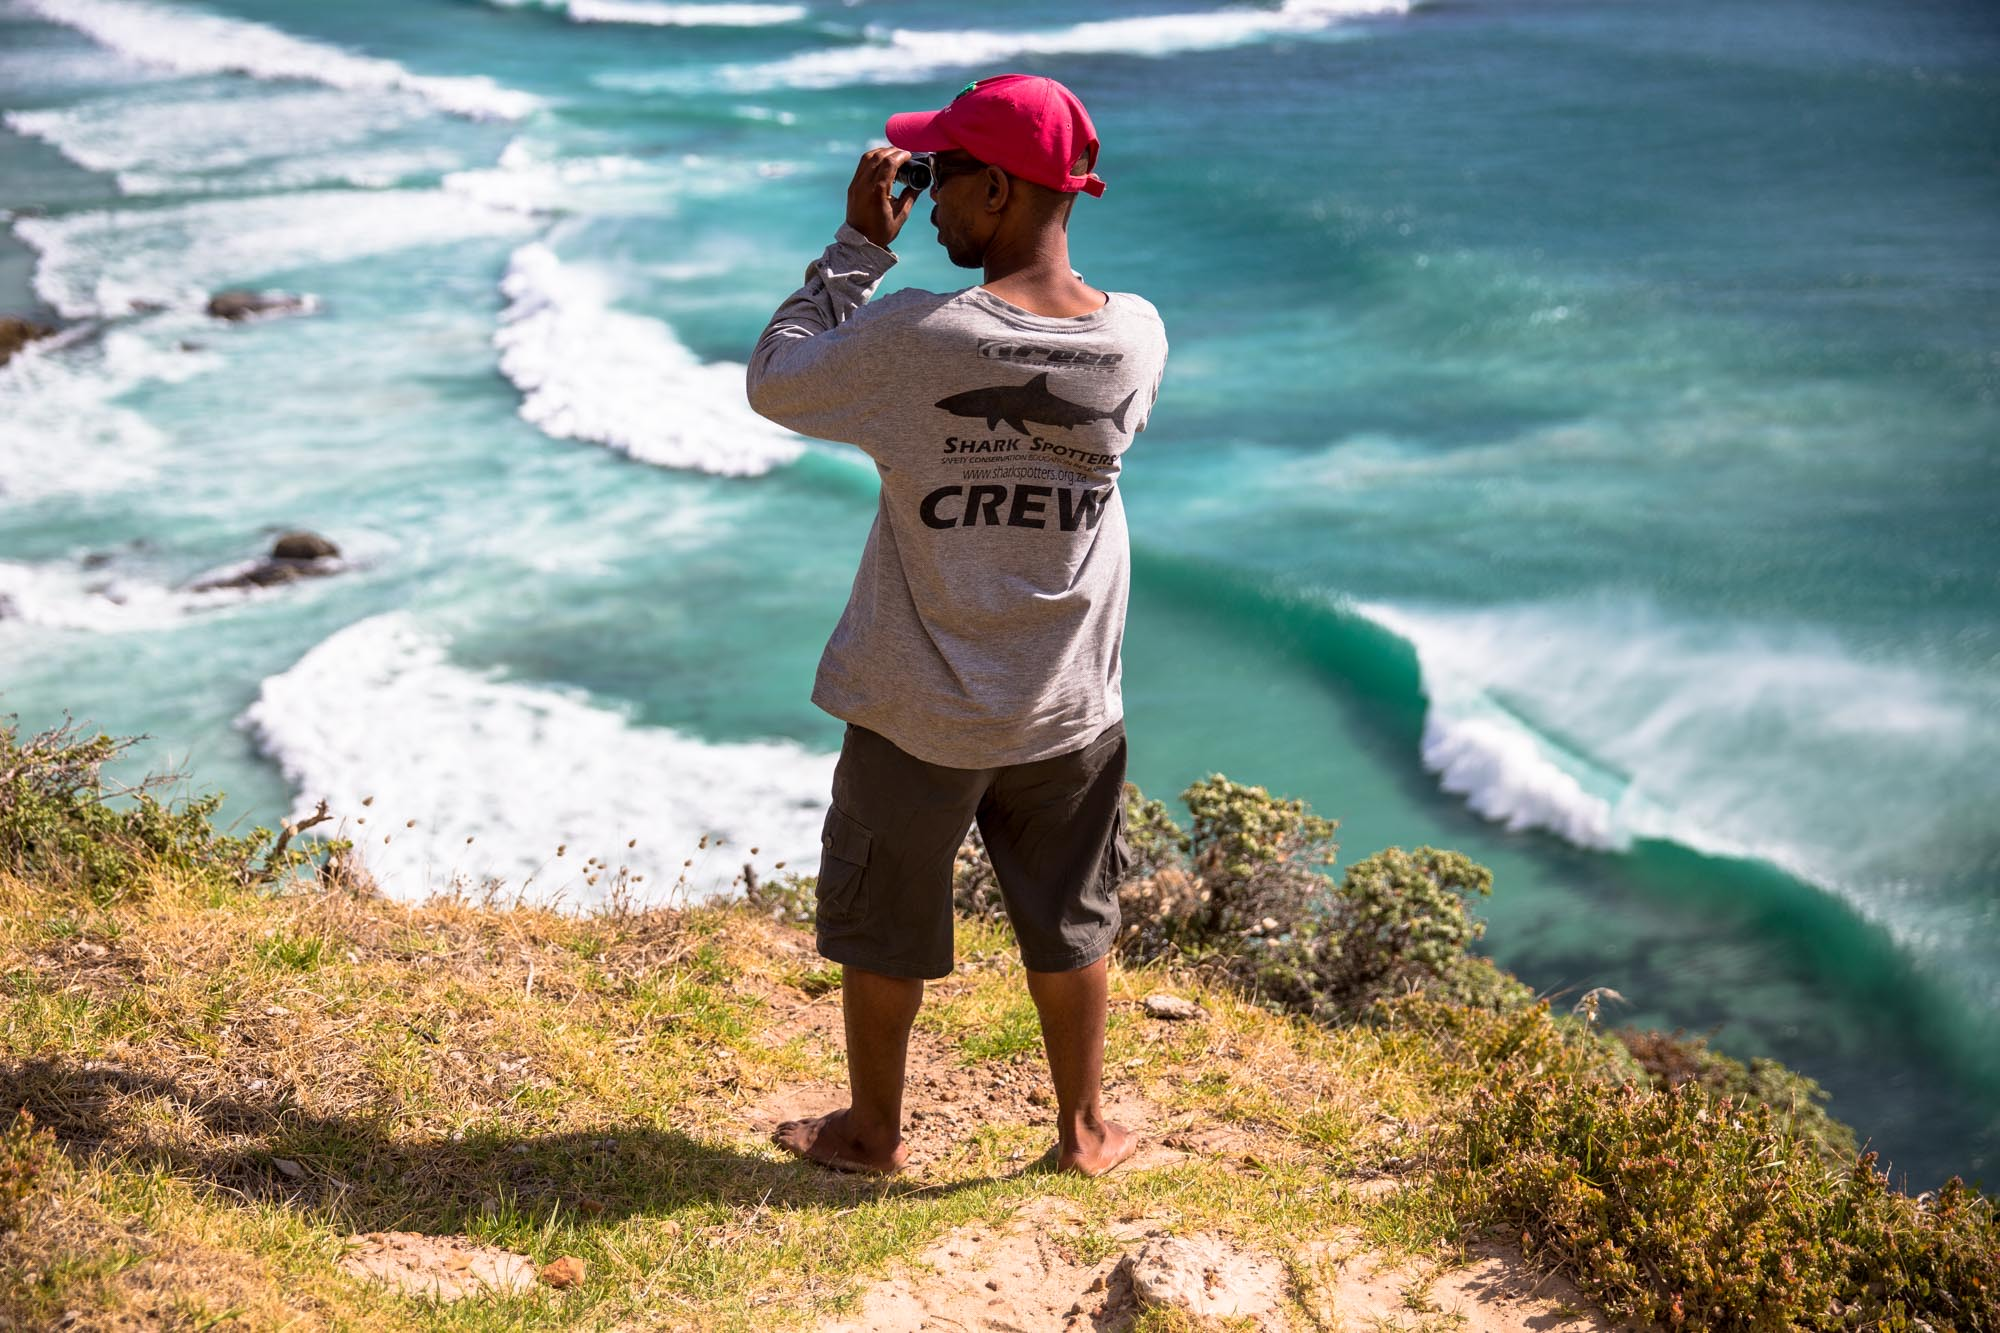 A Shark Spotter in Cape Town, scanning the lineup for men in grey suits